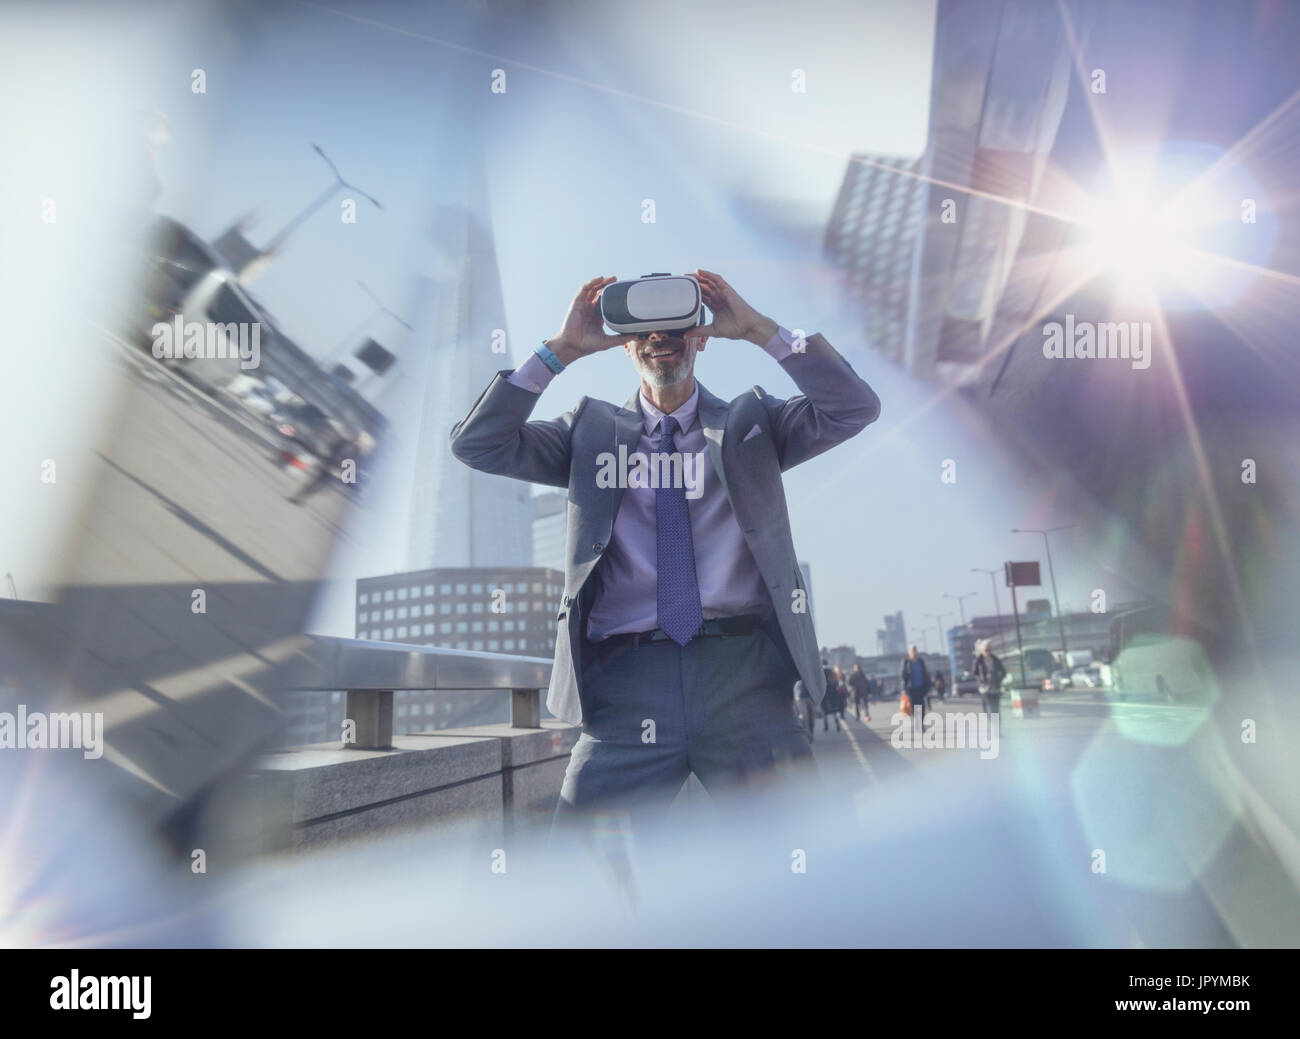 Businessman using virtual reality simulator glasses on urban street, London, UK - Stock Image